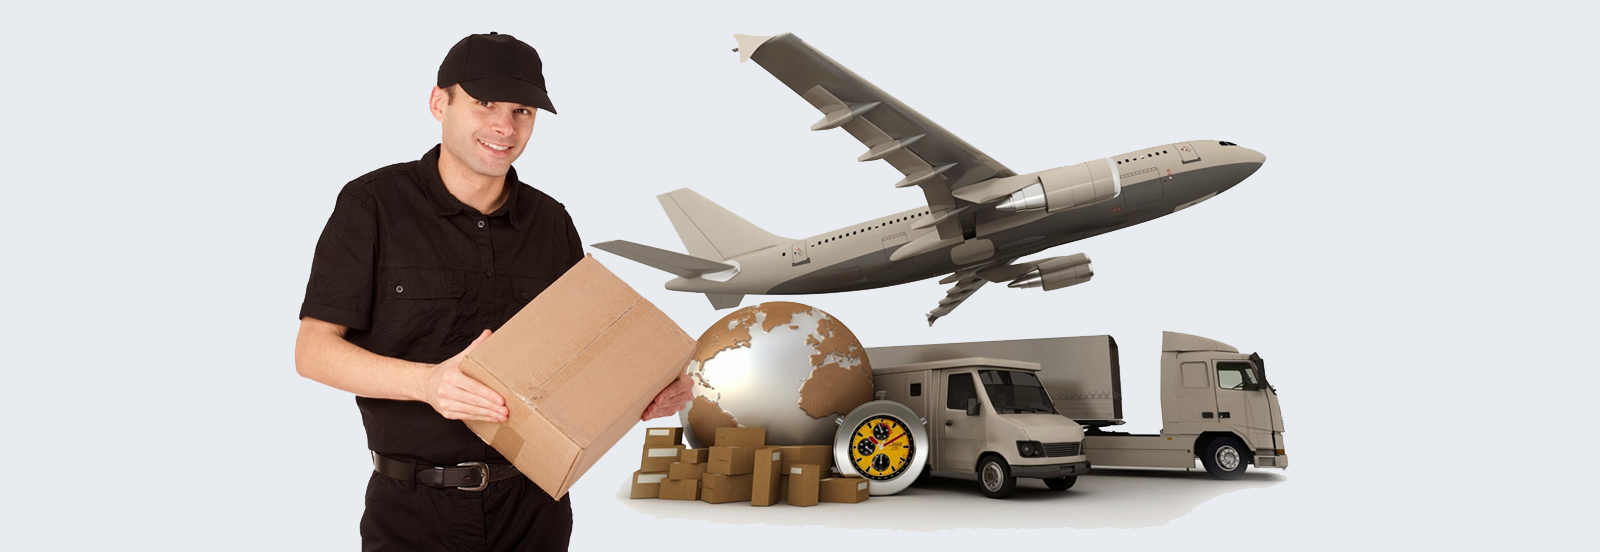 International Freight Forwarder Forwarding Courier Companies Agency